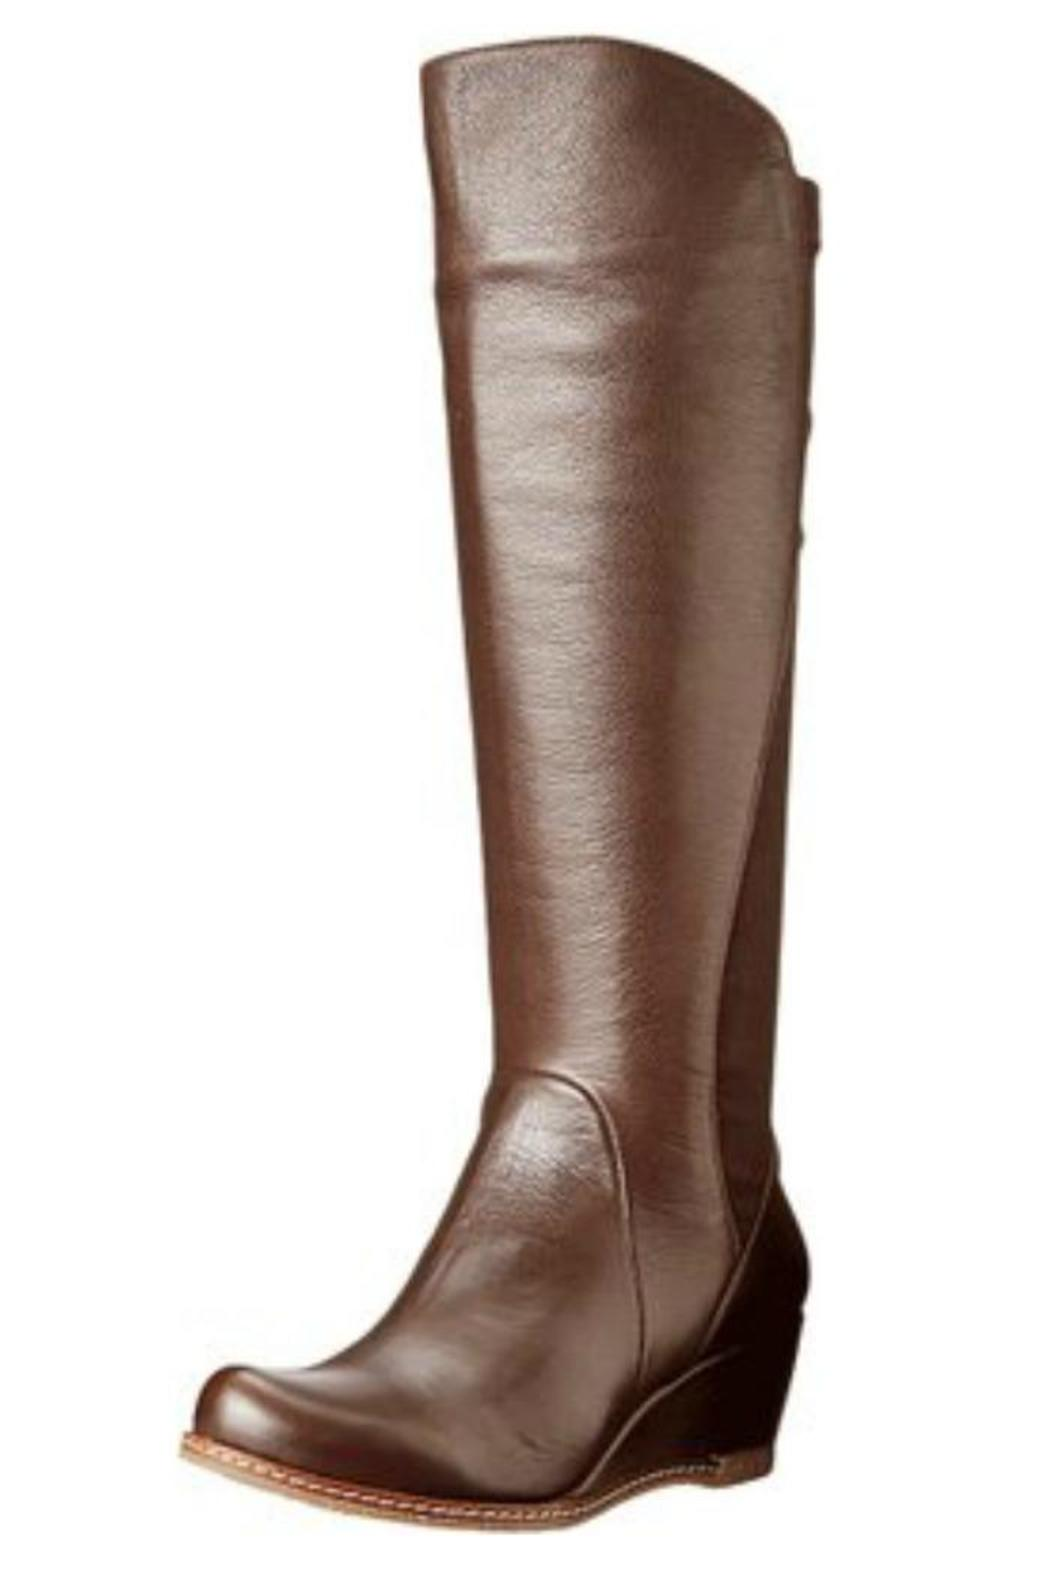 eric michael knee high wedge boot from california by heel